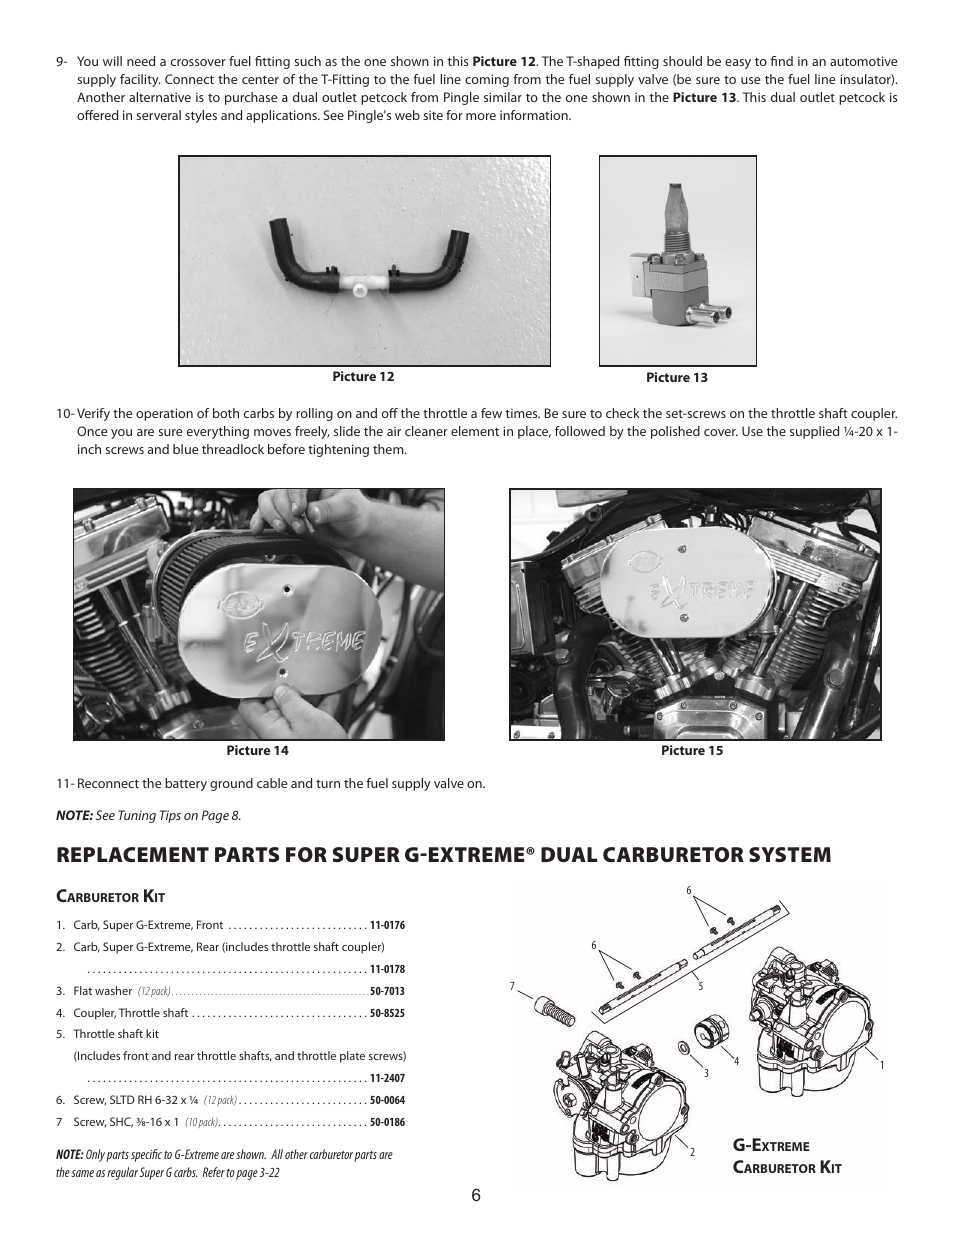 S&S Cycle G-Extreme Dual Carb Kit User Manual | Page 6 / 8